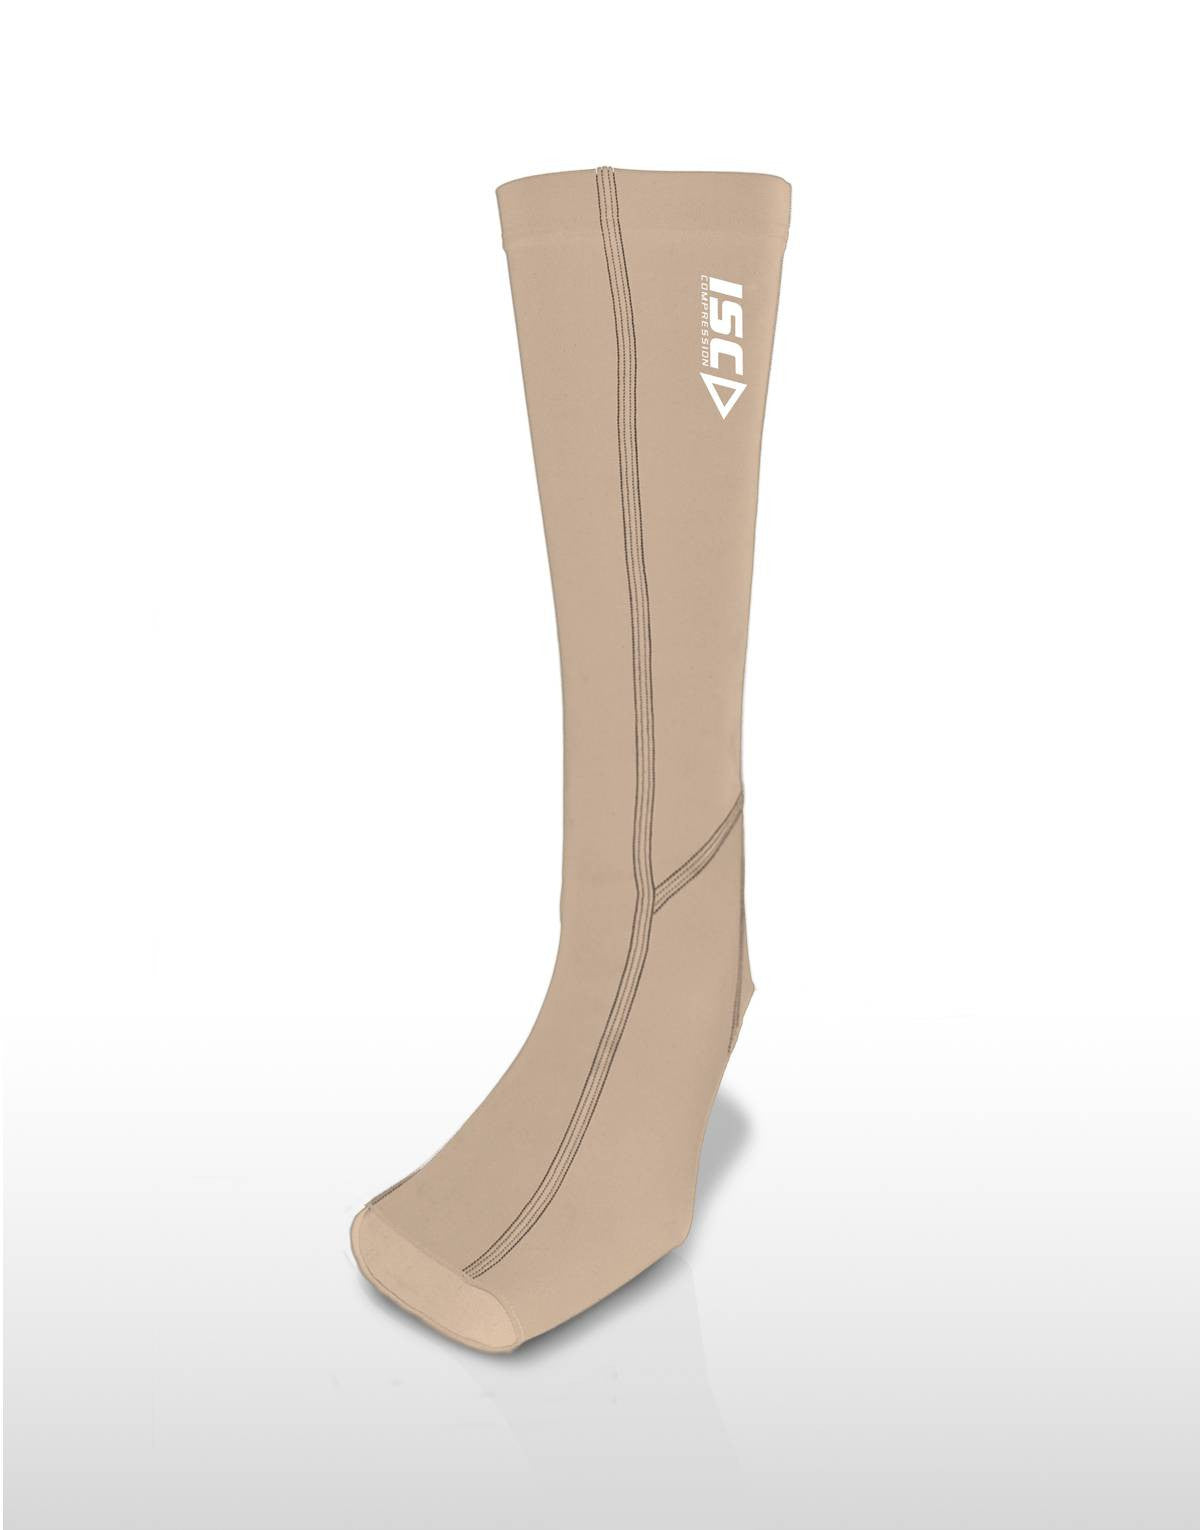 Compression Calf Sock - Skin